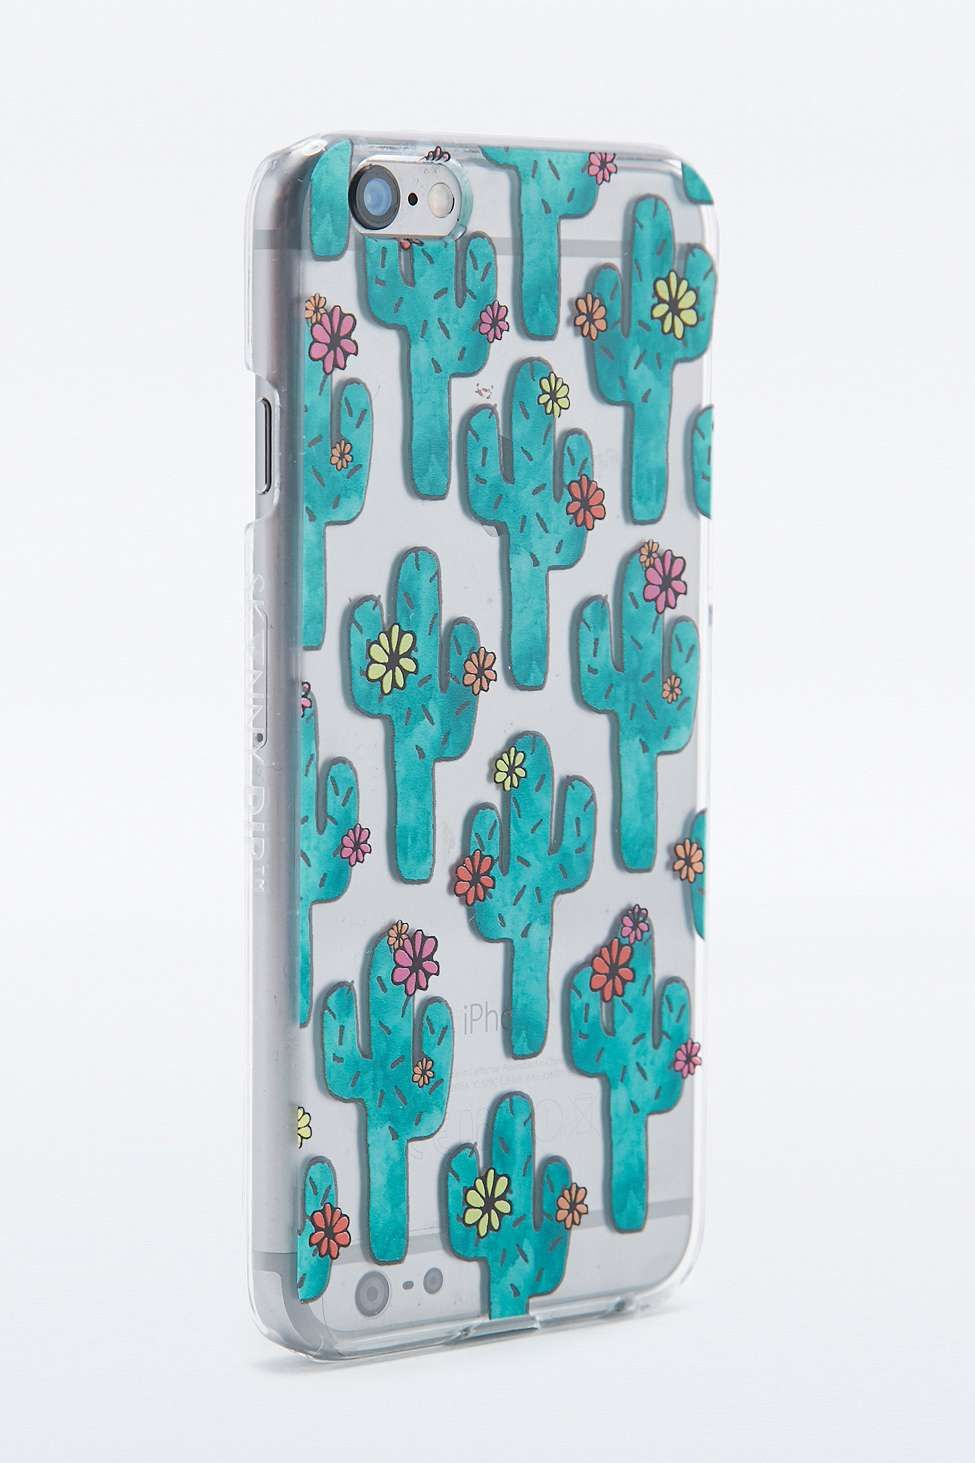 Skinnydip Cactus iPhone 6 coque - Urban